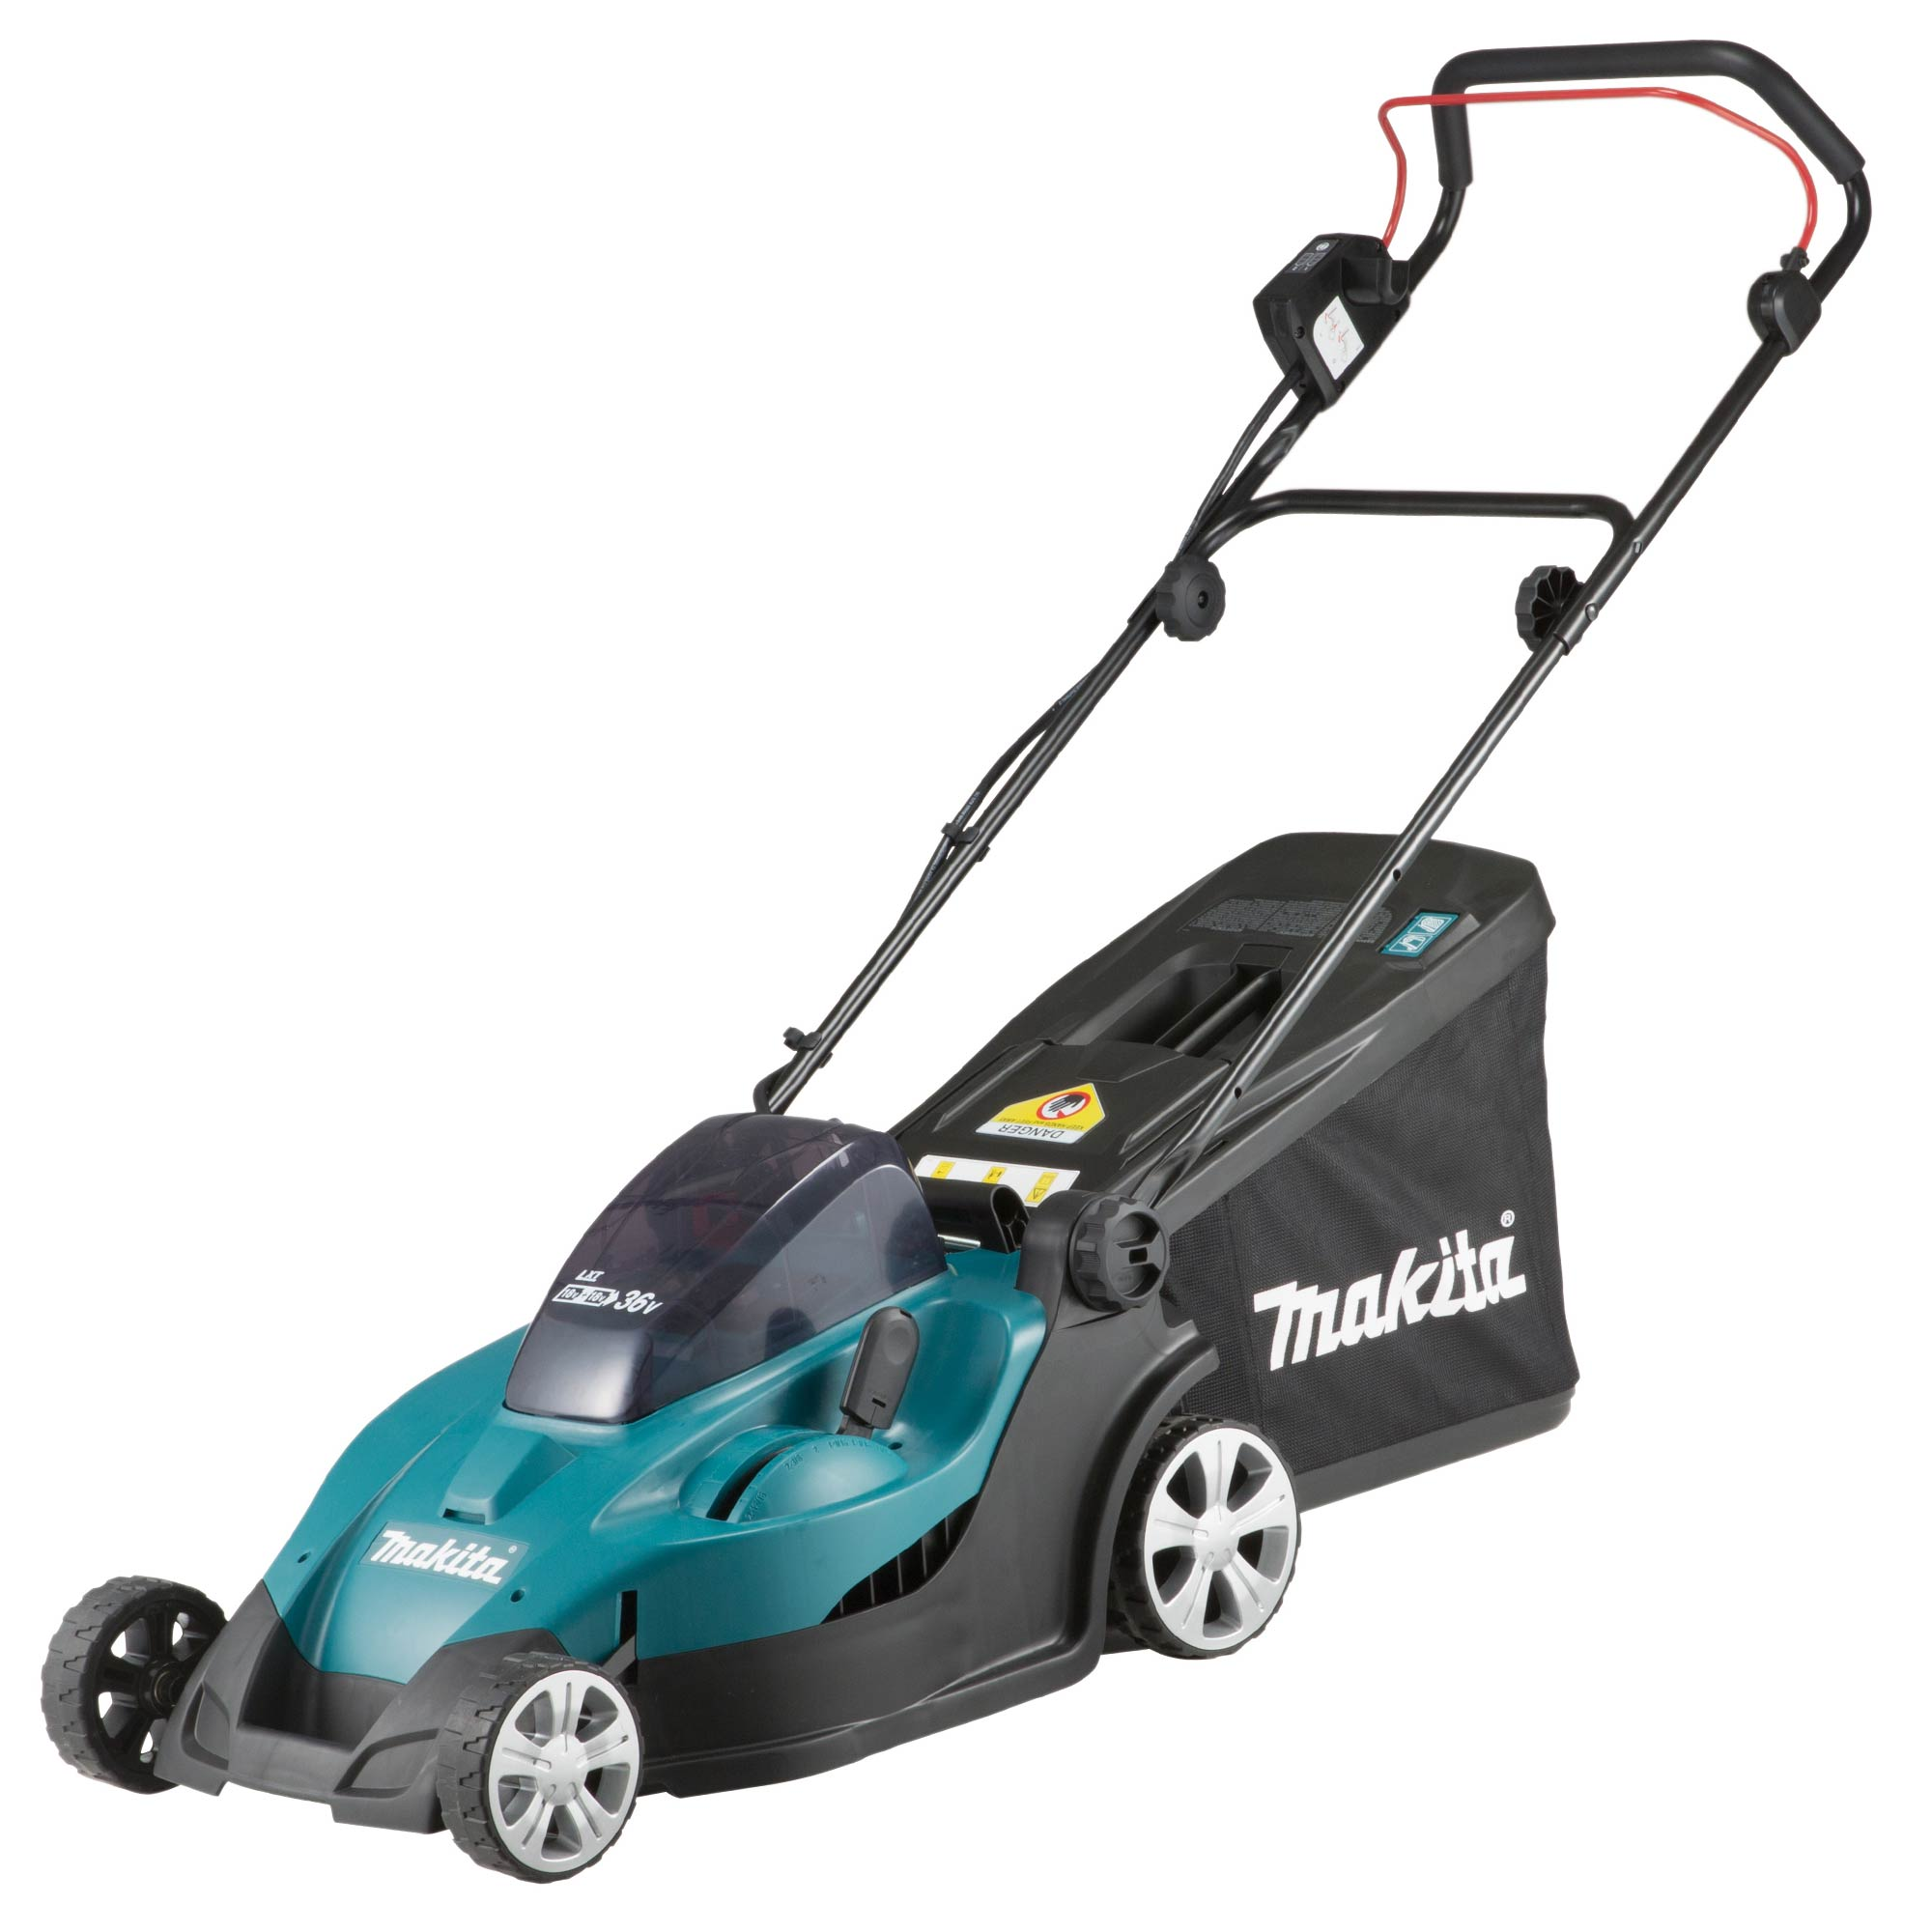 makita dlm431z makita twin 18v 36v lxt lawmower body. Black Bedroom Furniture Sets. Home Design Ideas